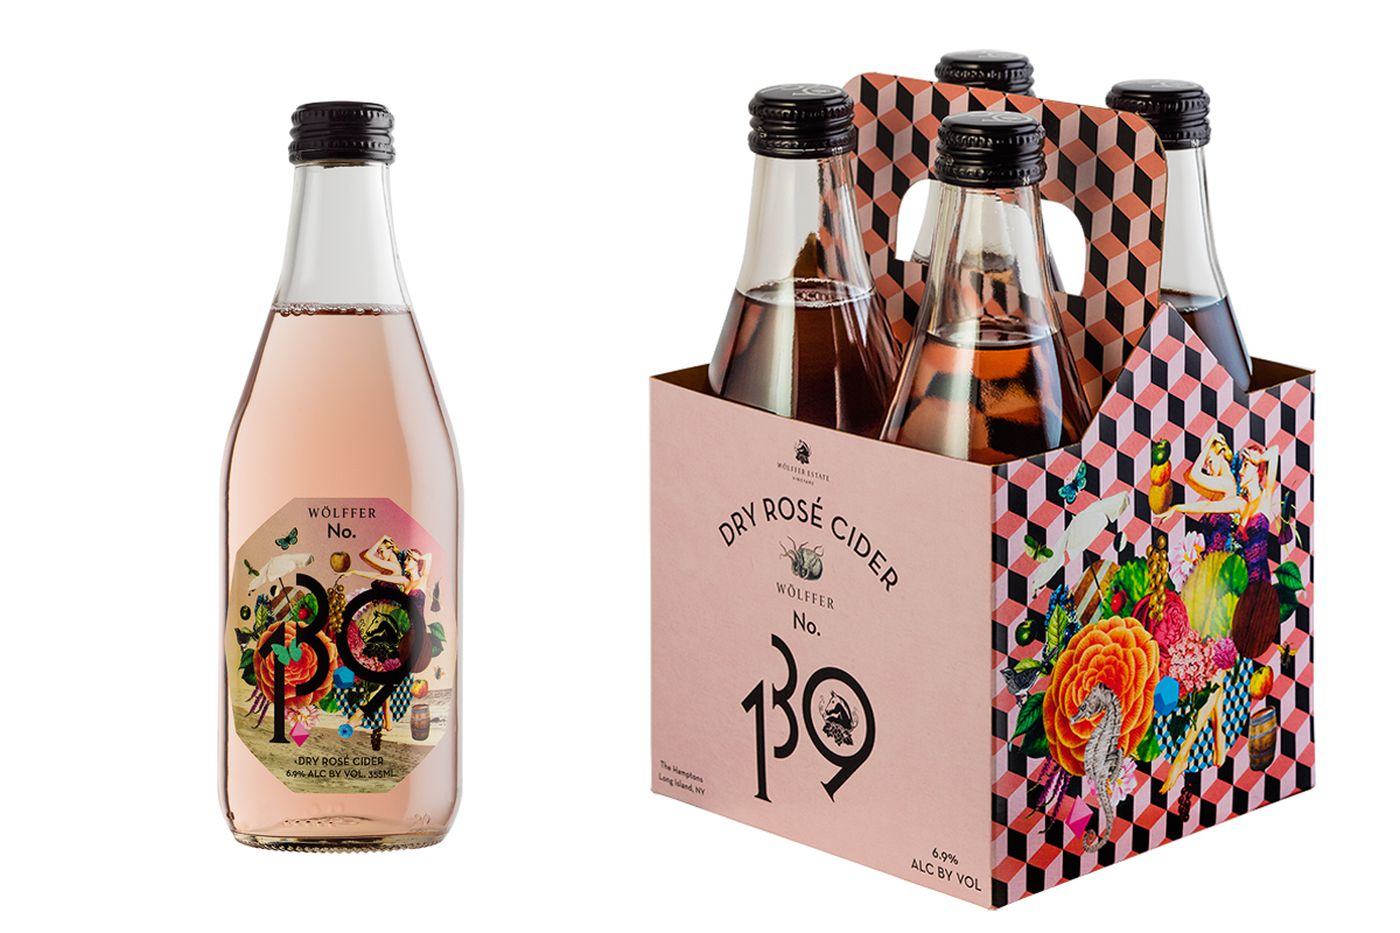 Rose cider as a transition from summer to fall